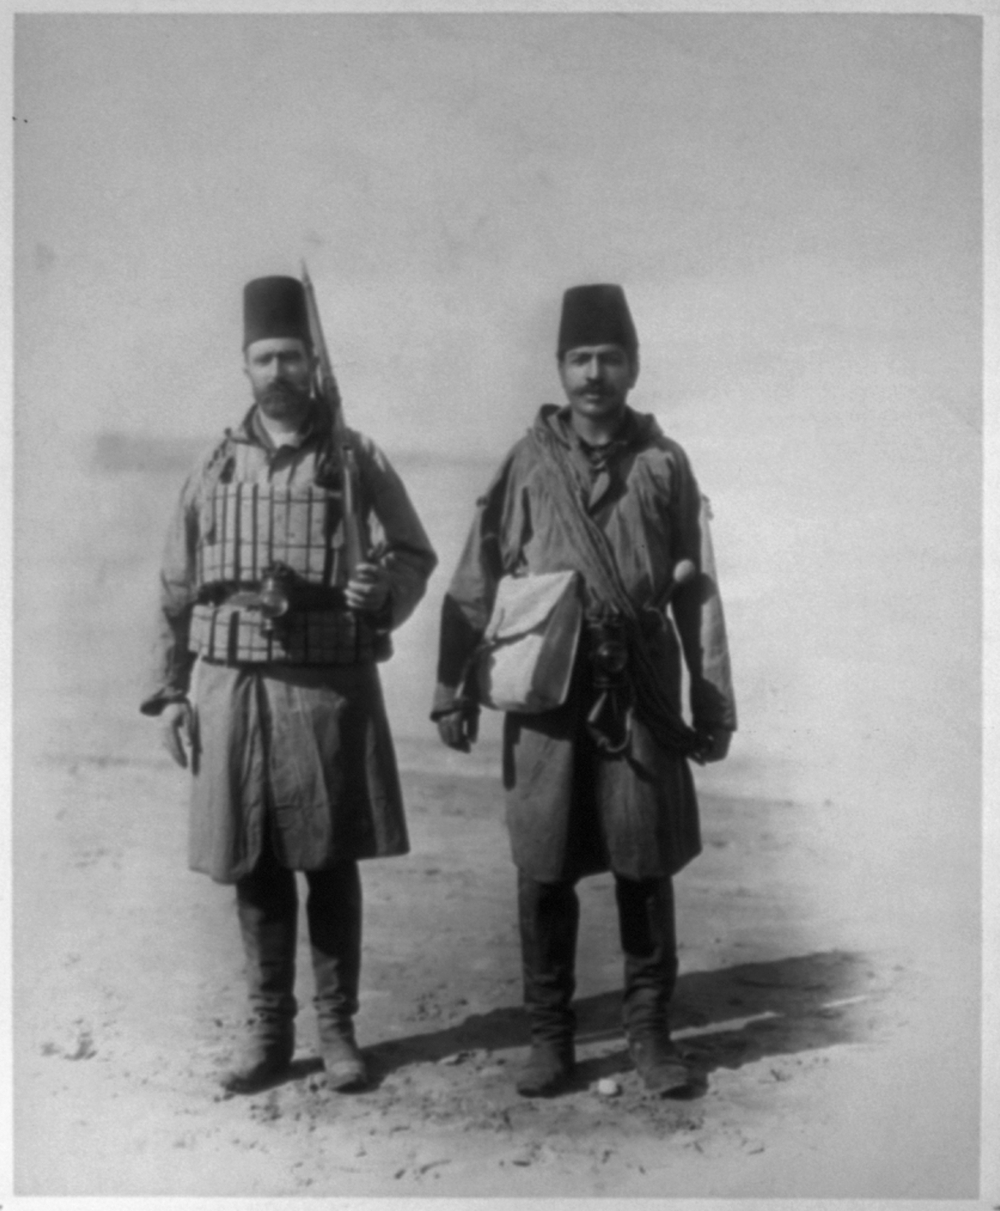 [The night guards of the lifesaving station during stormy times] / Constantinople, Abdullah Frères